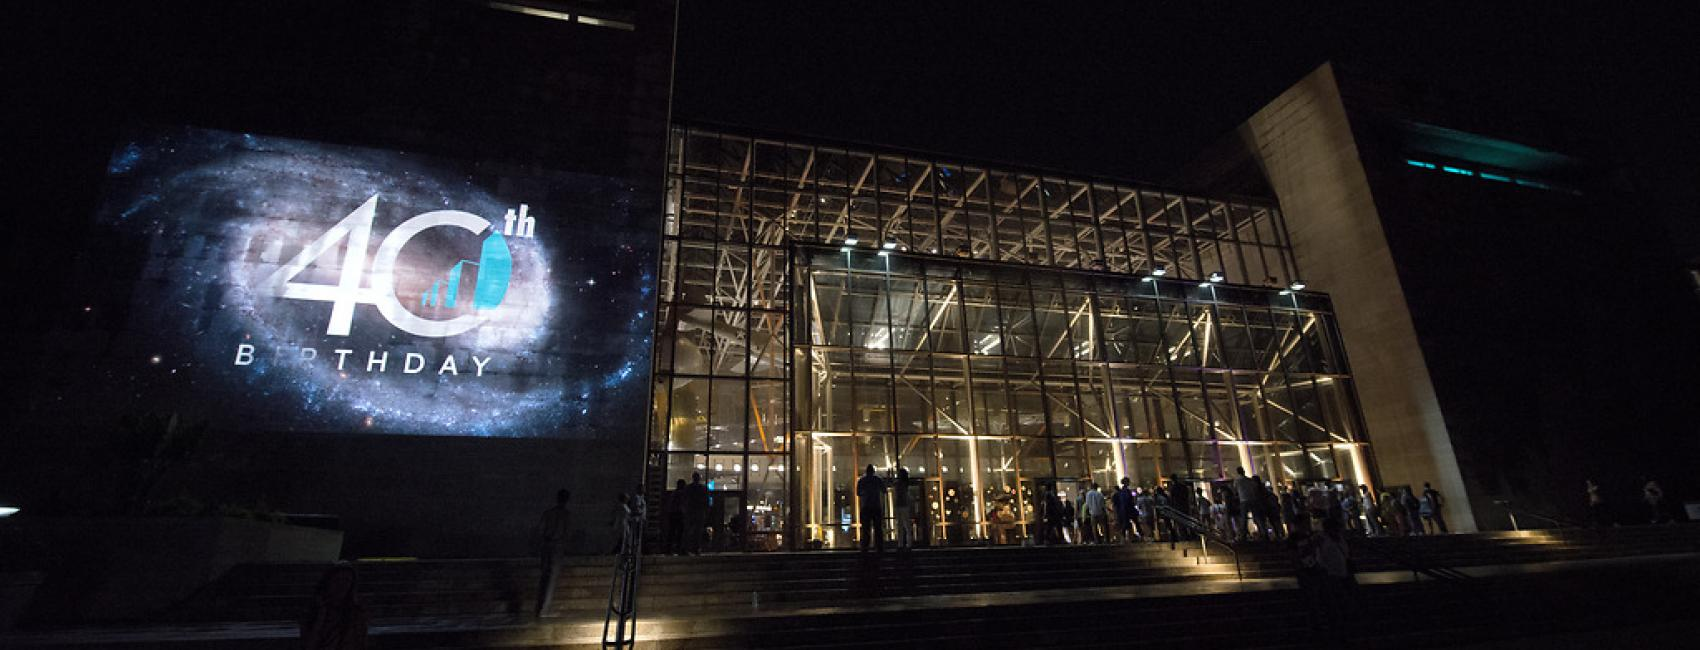 Image of the building with a projection on the exterior.